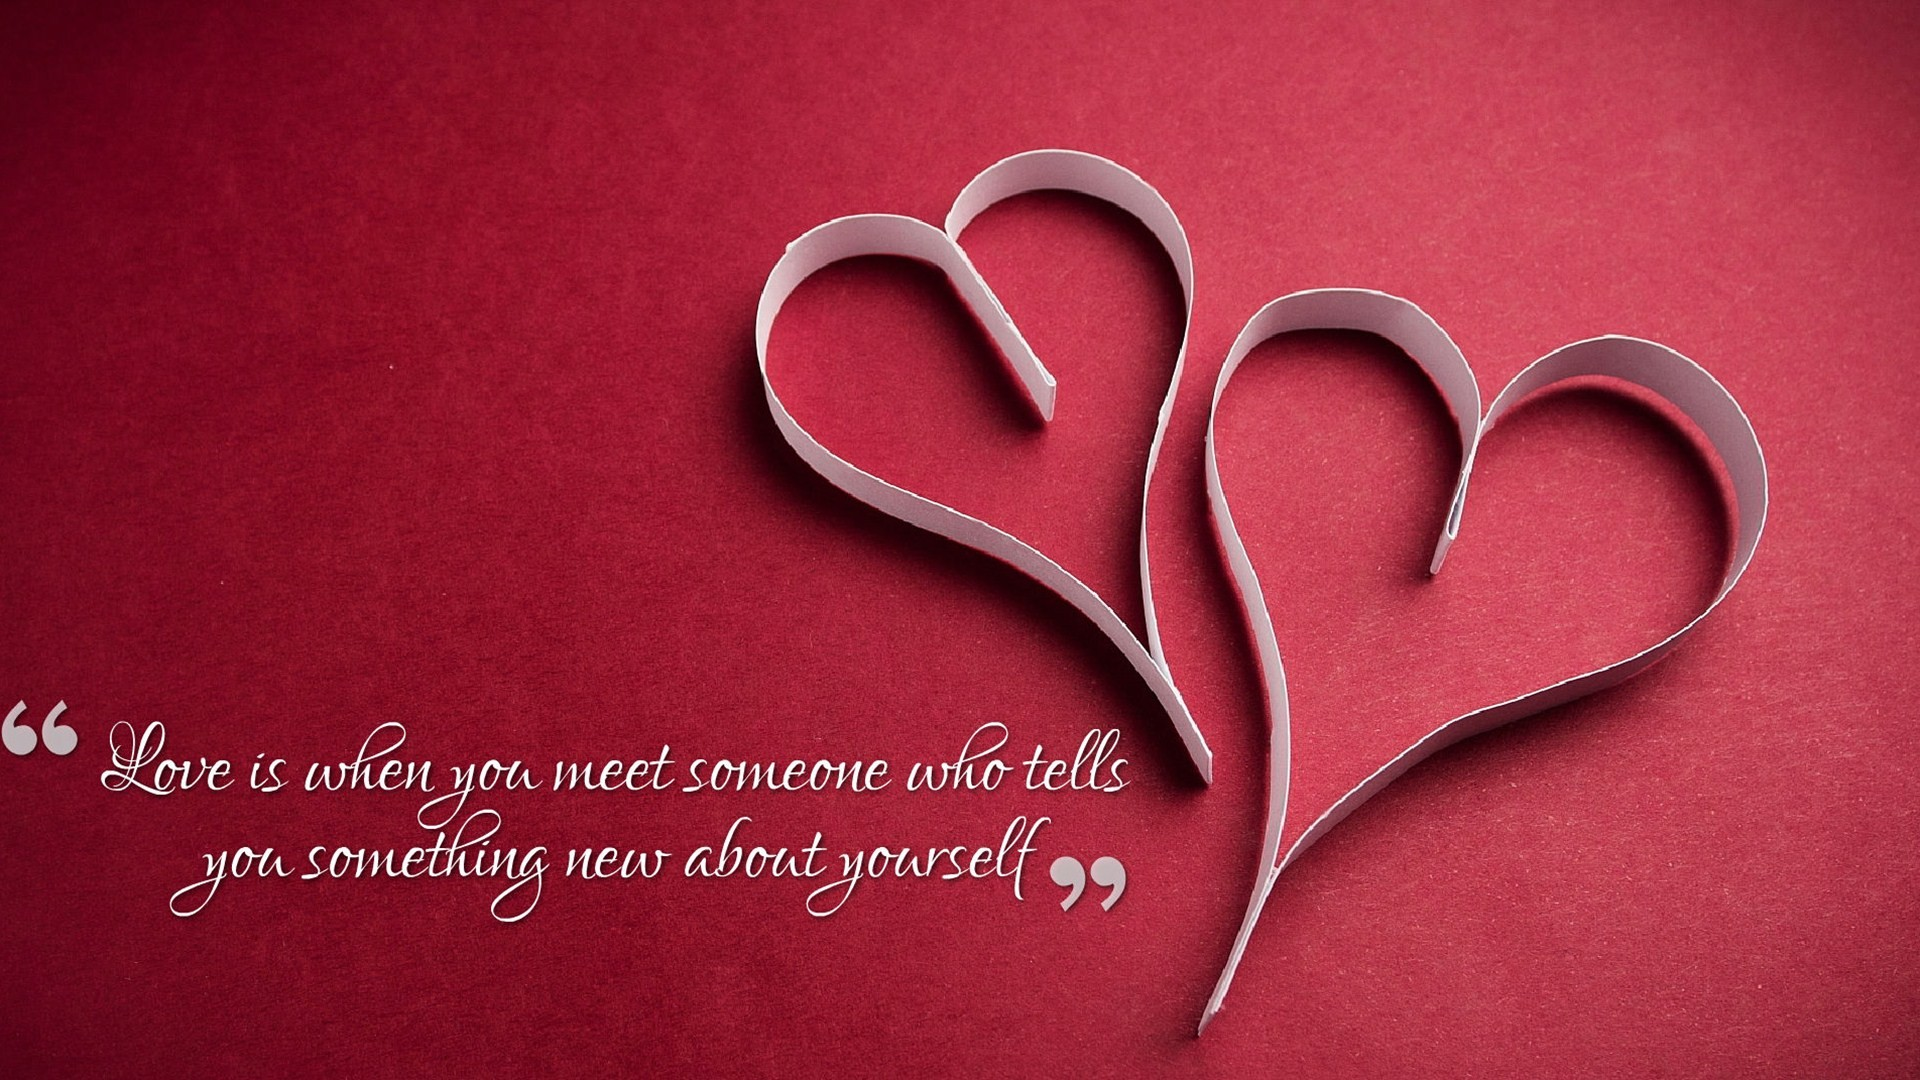 Sad Love romantic poetry Wallpapers & Pictures